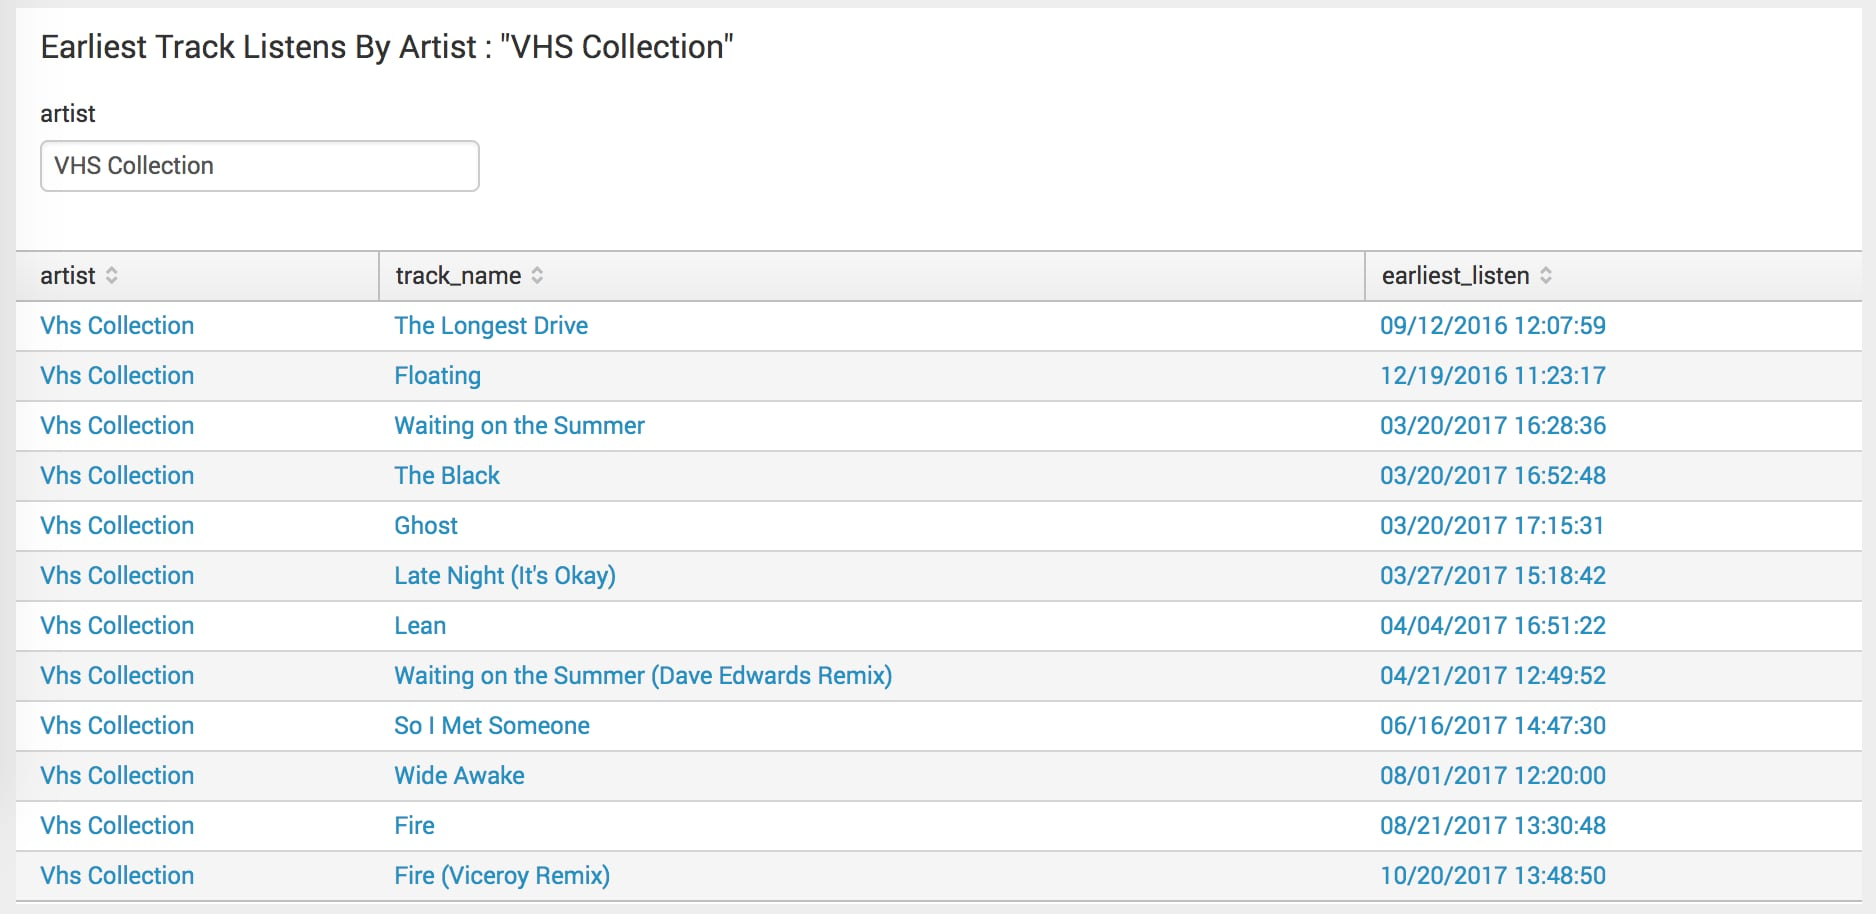 This screen capture shows the earliest listens of the band VHS Collection, by track name.